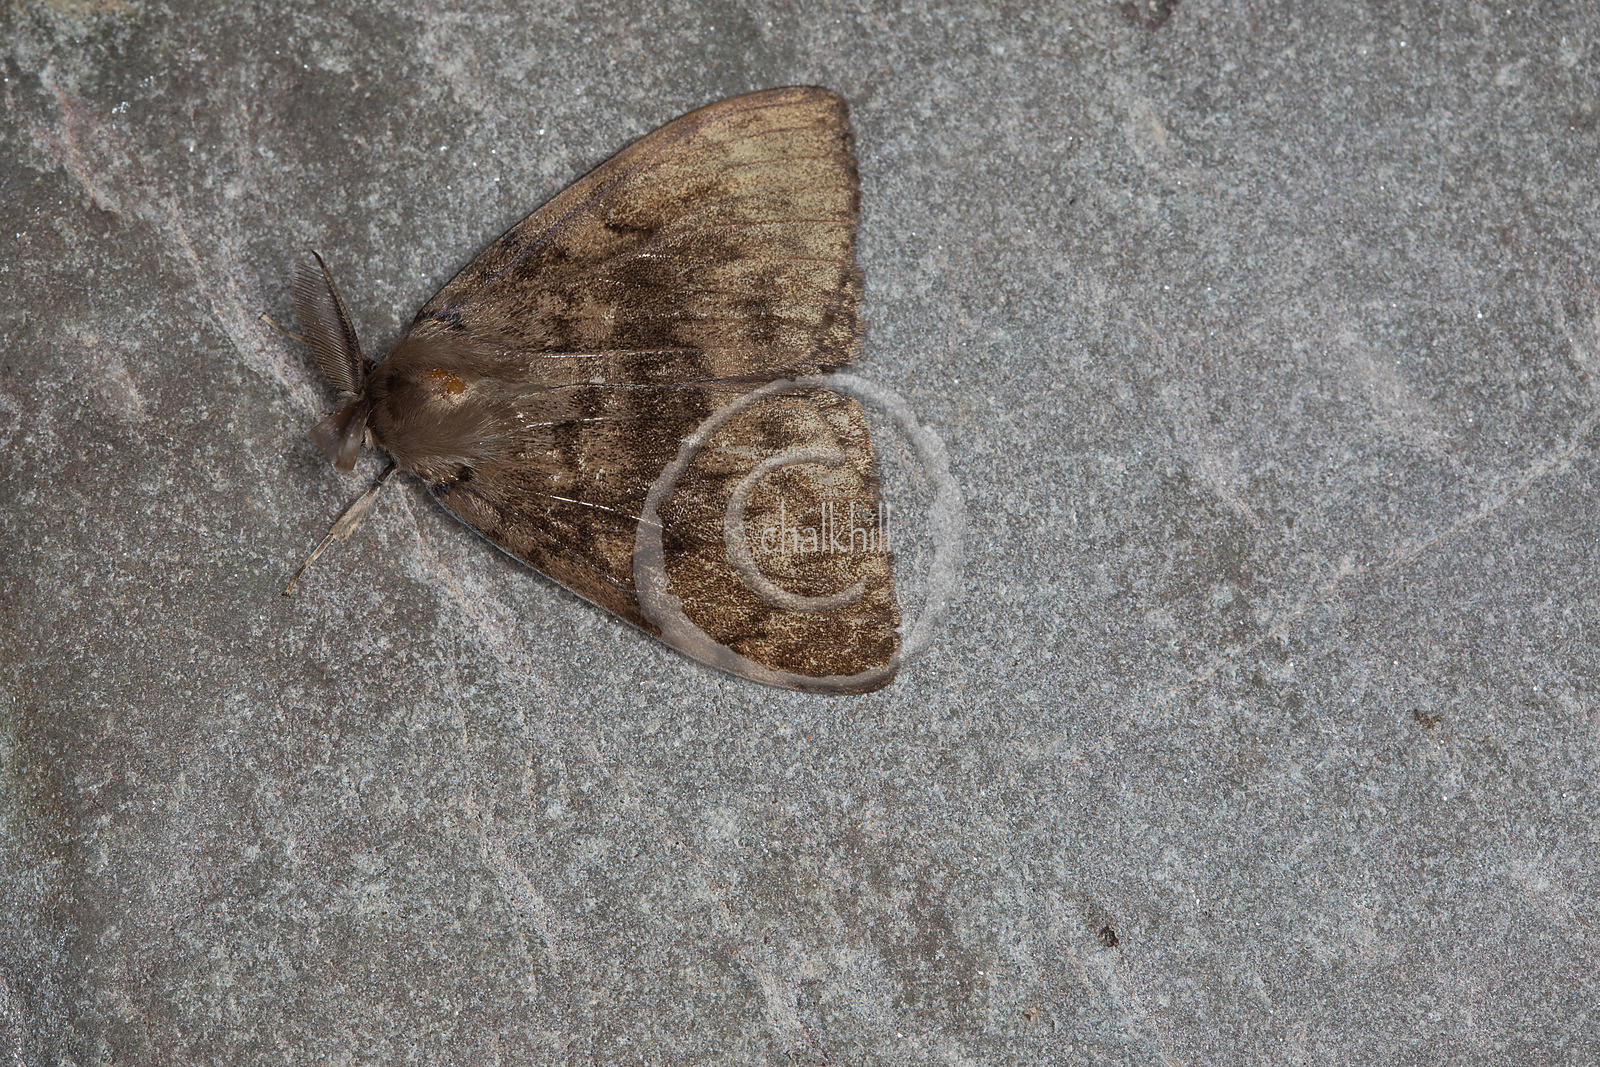 [Lymantria dispar [72.011] Gypsy Moth]-[GBR-Flatford Mill]